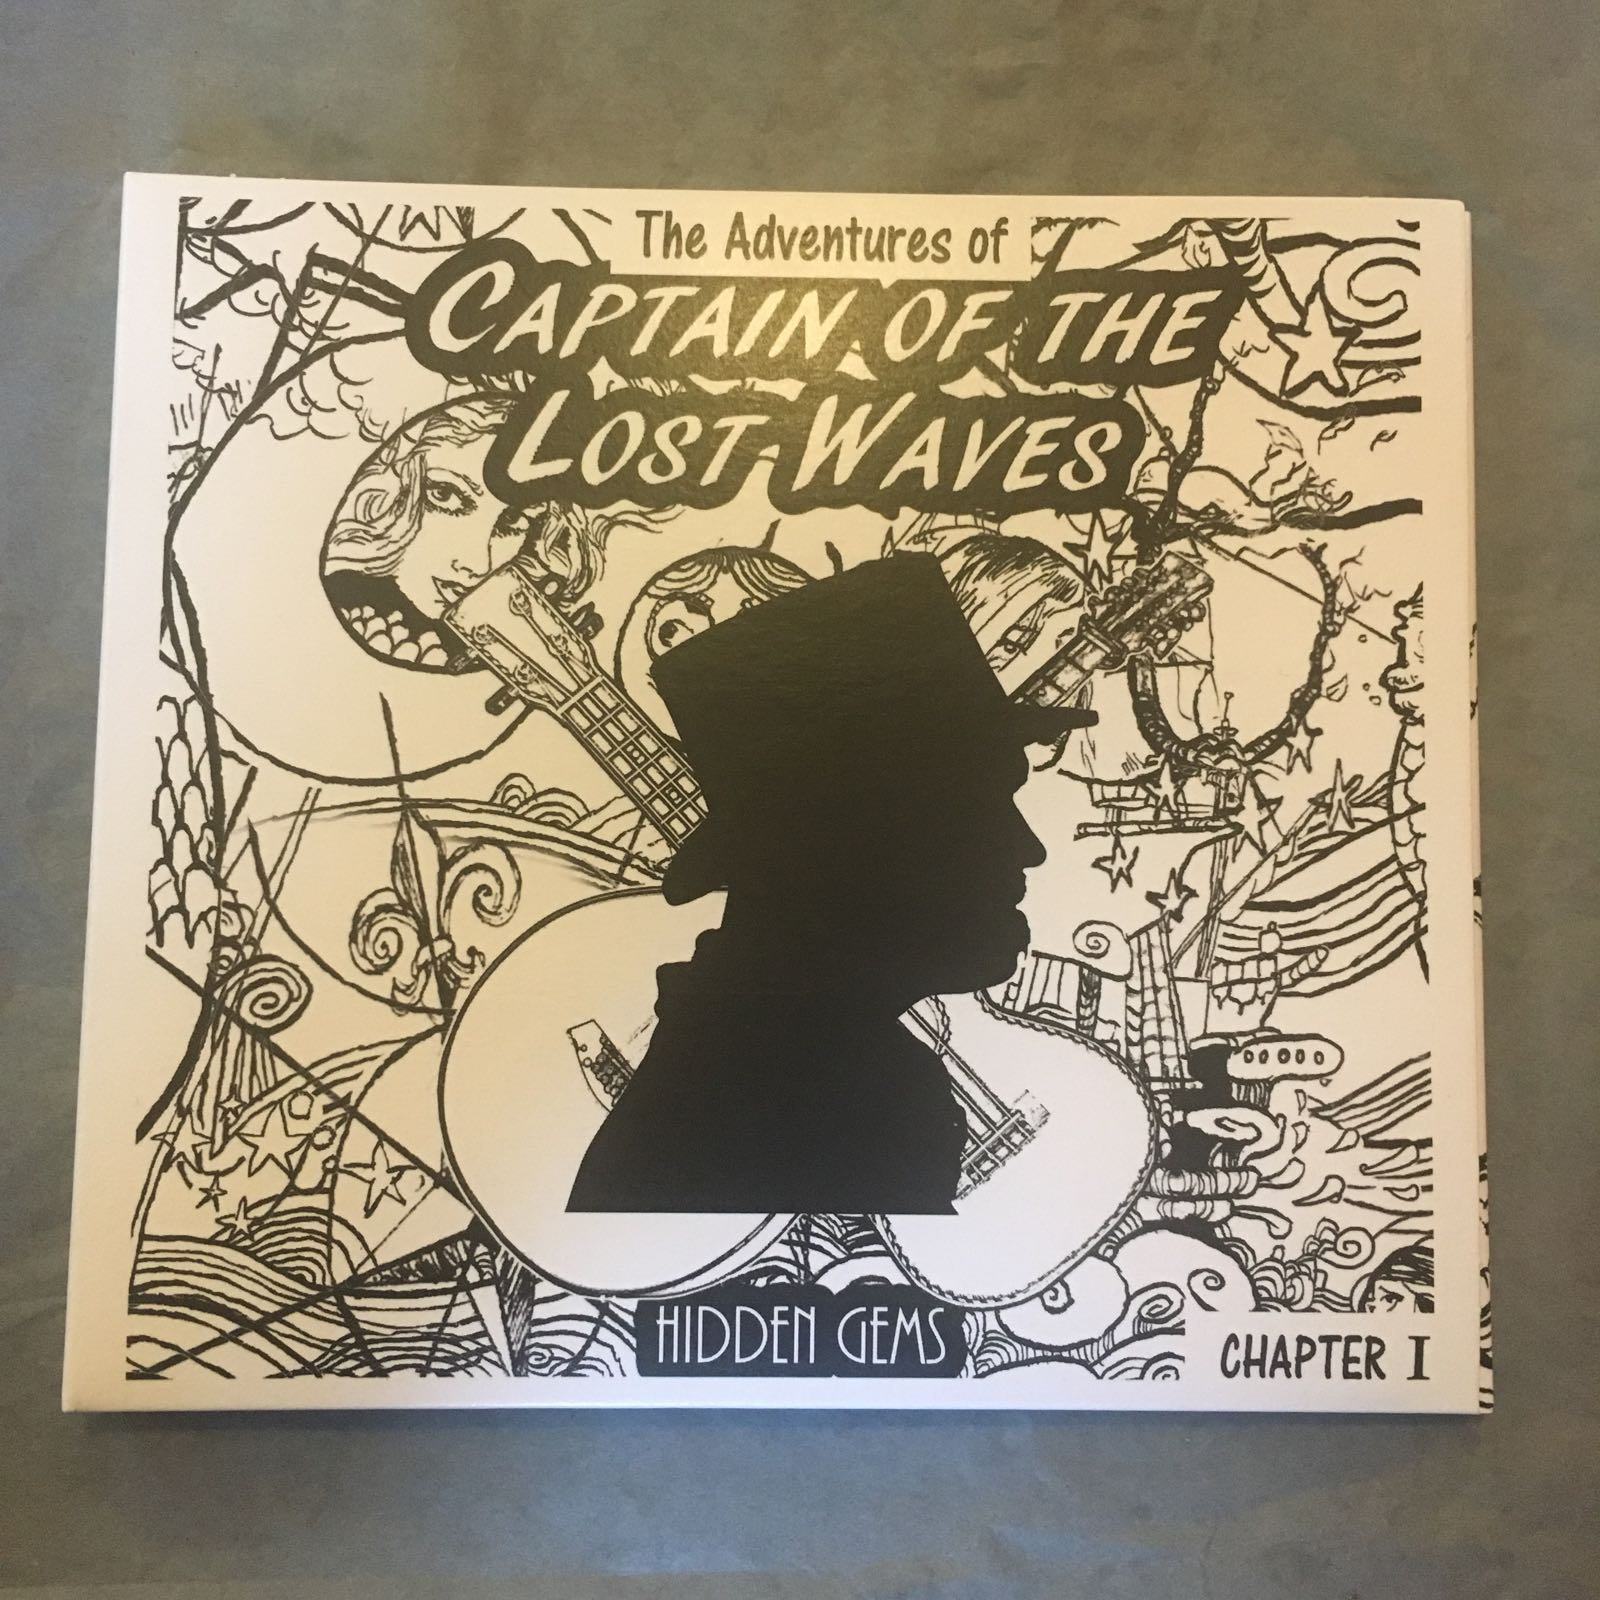 CD - Captain of the Lost Waves, Hidden Gems Chapter 1